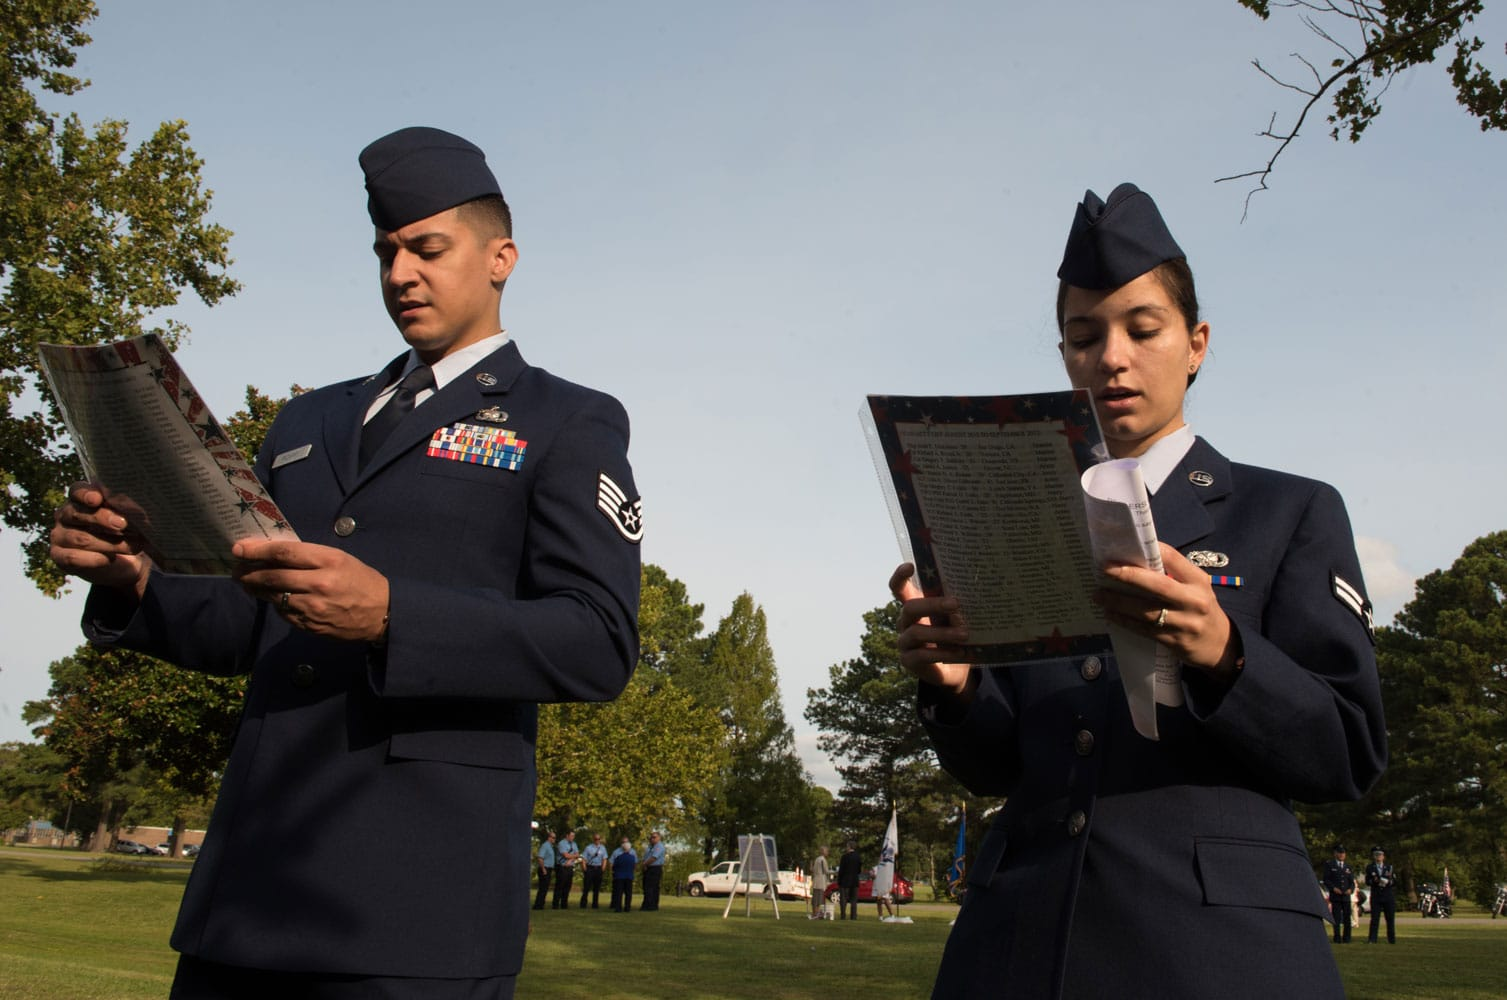 "U.S. Air Force Staff Sgt. Stephen Irizarry, 440th Supply Chain Operations Group equipment technician and Airman First Class Melanie Irizarry 733d Logistics Readiness Squadron supply apprentice, honor the victims of terrorist attack on Sept. 11, 2001 and those who have paid the ultimate sacrifice since, during ""The Reading of The Names"" at Gosnolds Hope Park, Hampton, Va., Sept. 11, 2017."